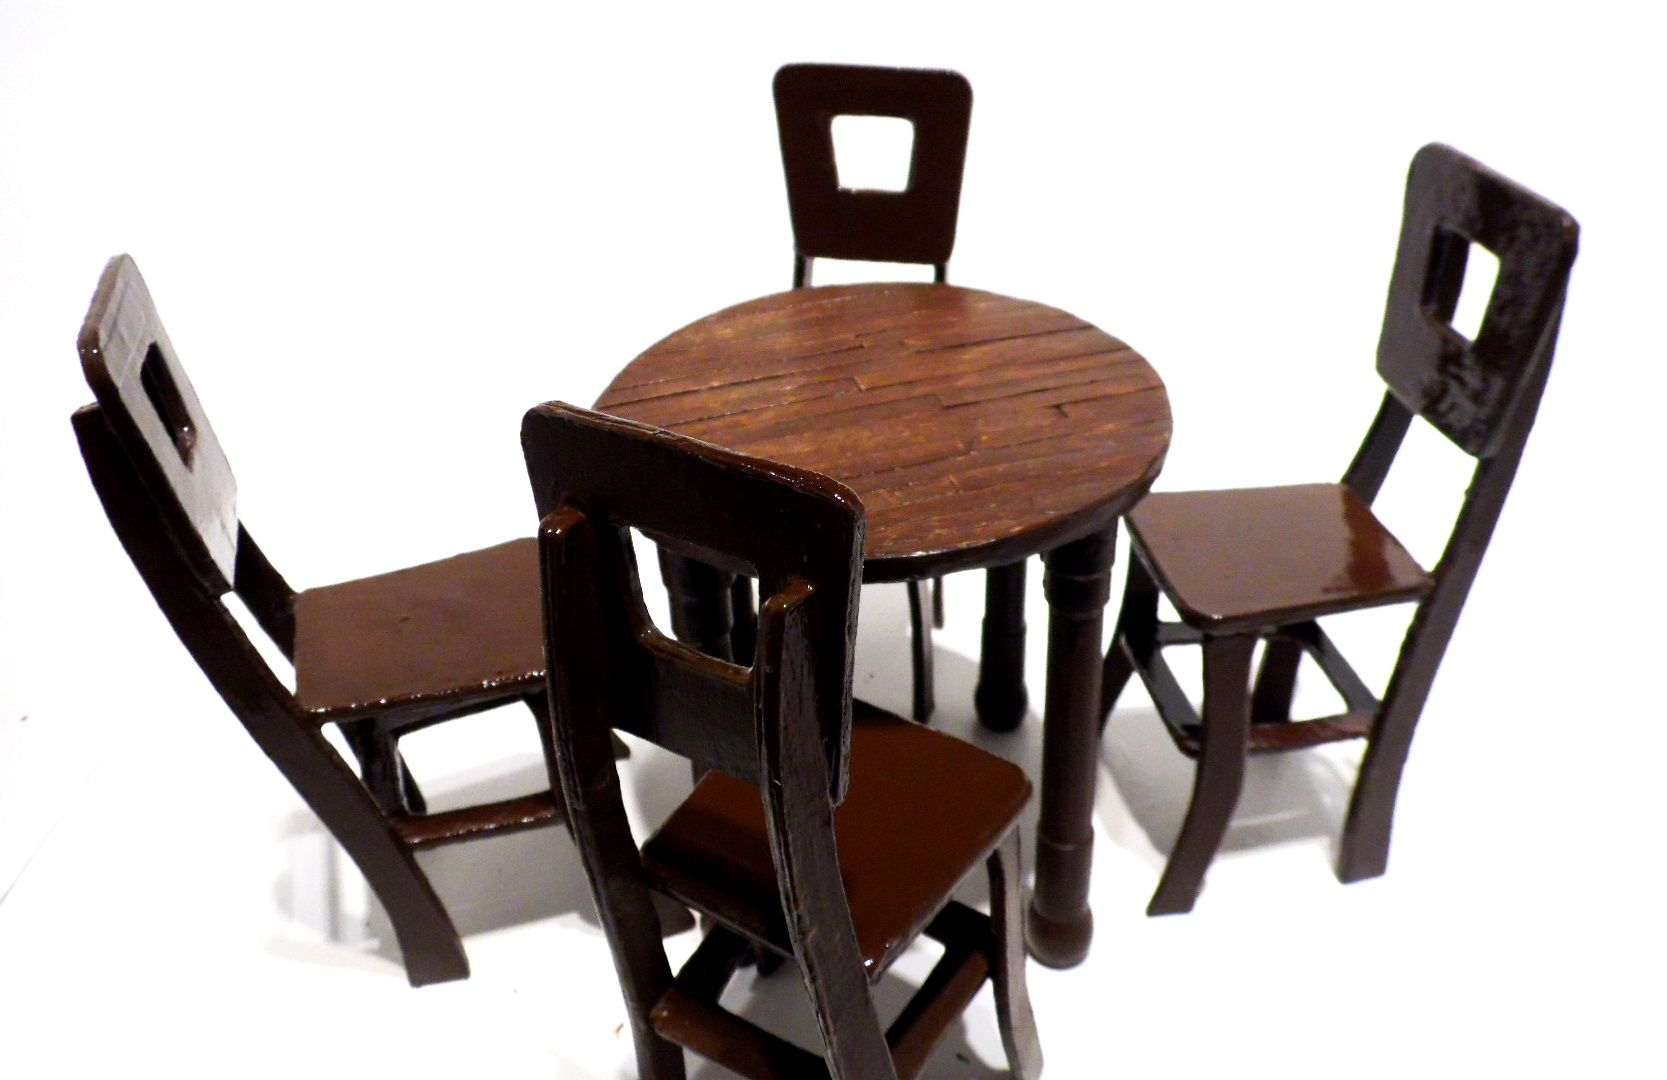 Dollhouse Dining Room Table And Chairs Set Made From Recycled